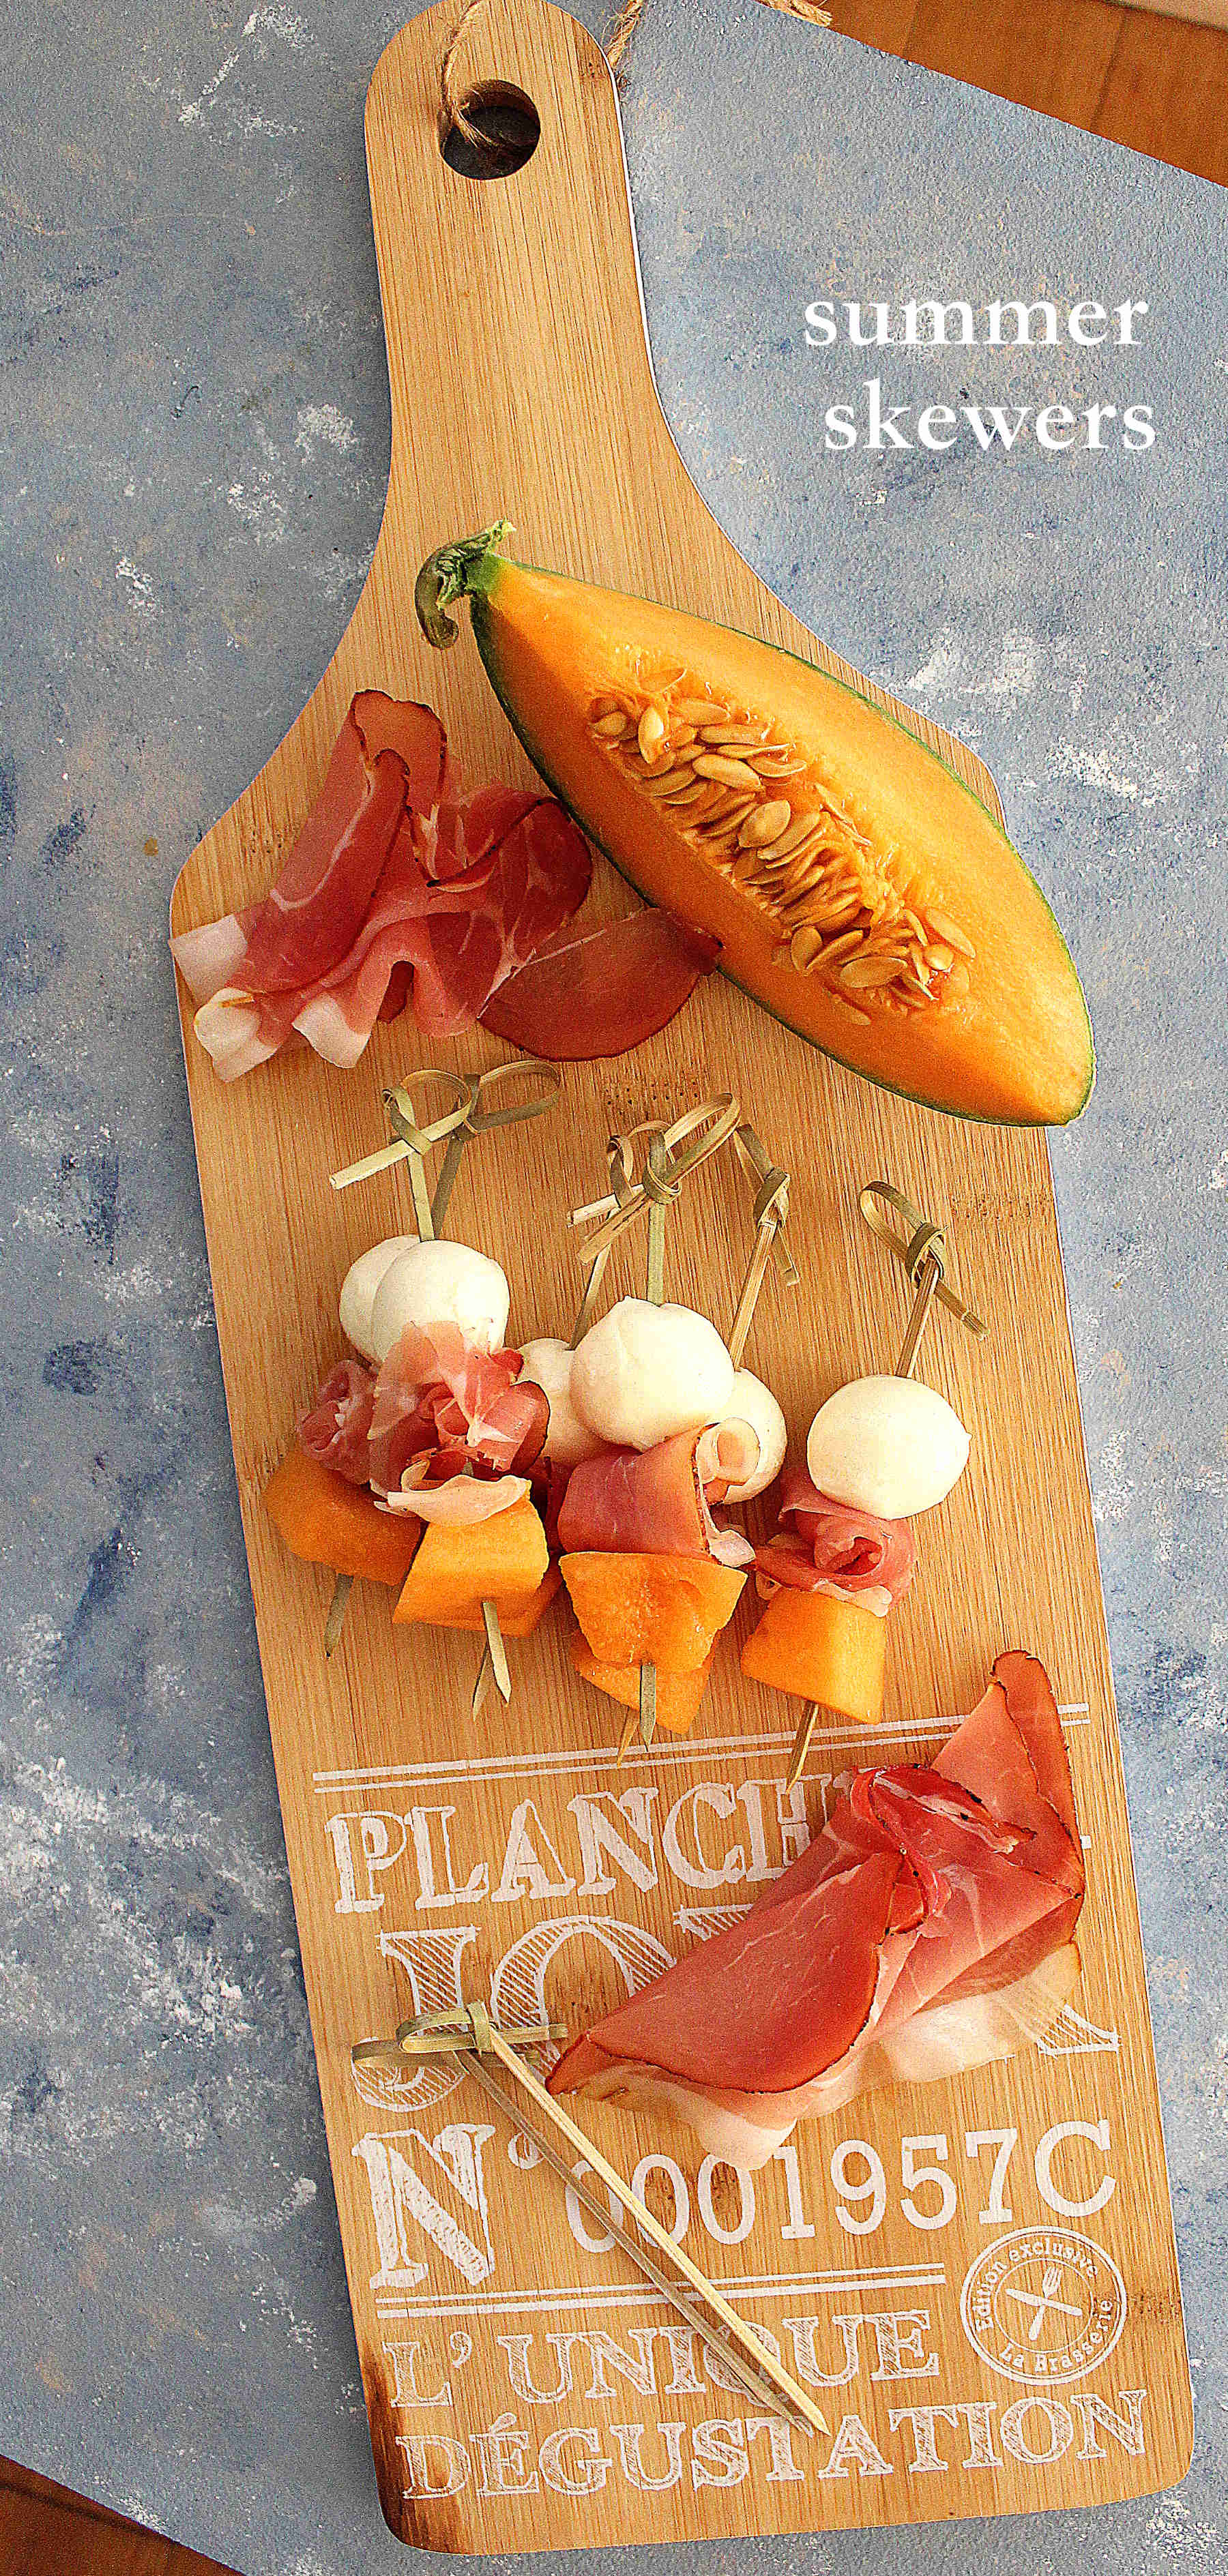 Summer skewers : mozzarella, prosciutto and melon